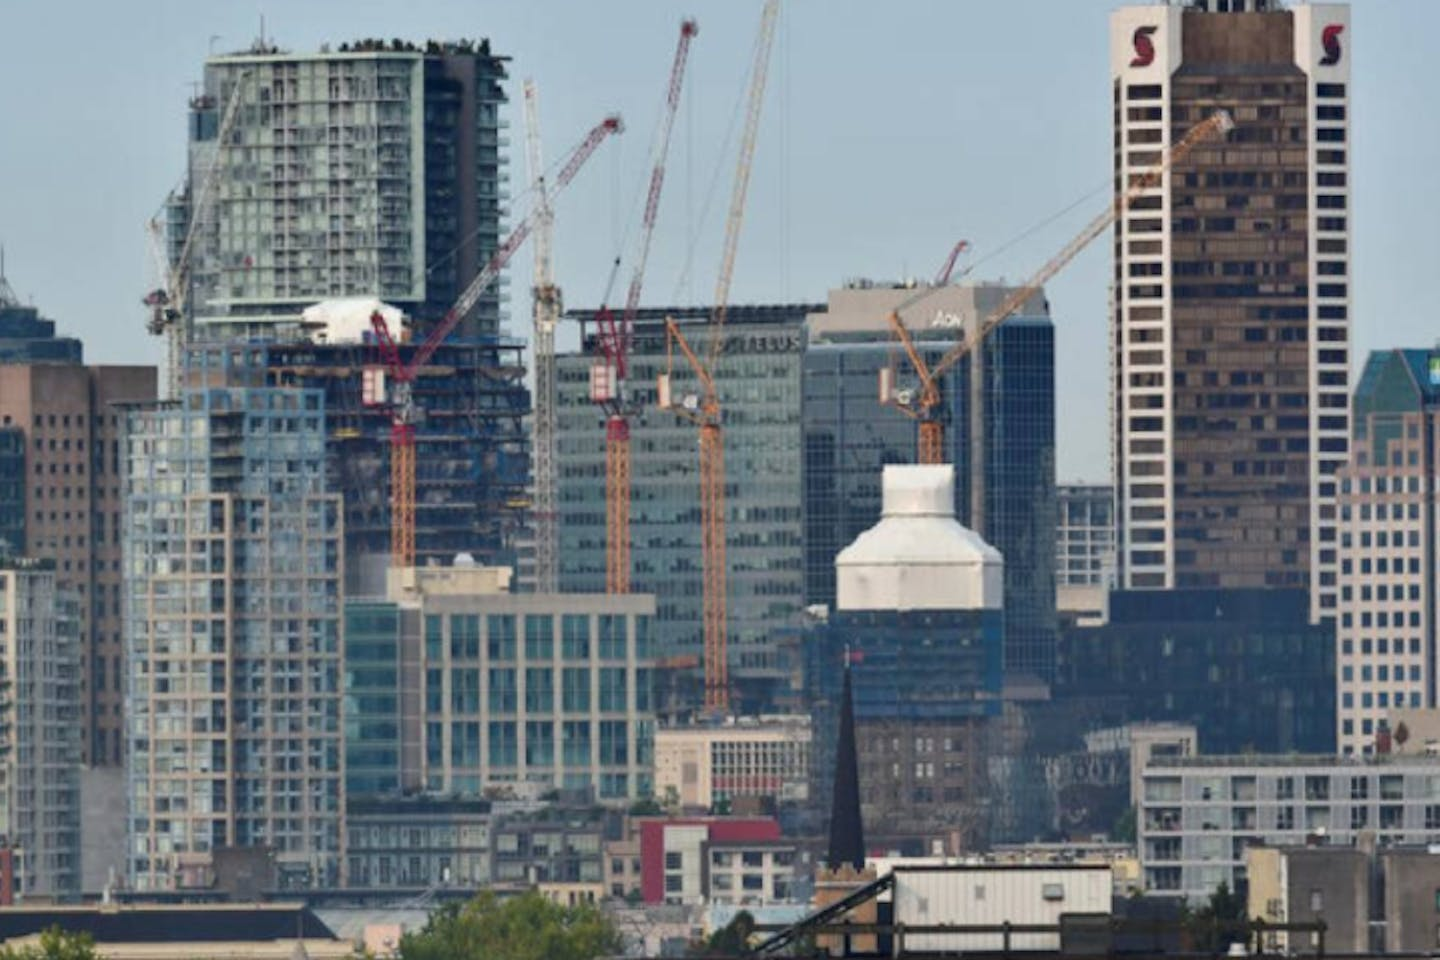 Condominium and office towers are seen under construction in Vancouver, British Columbia, Canada.